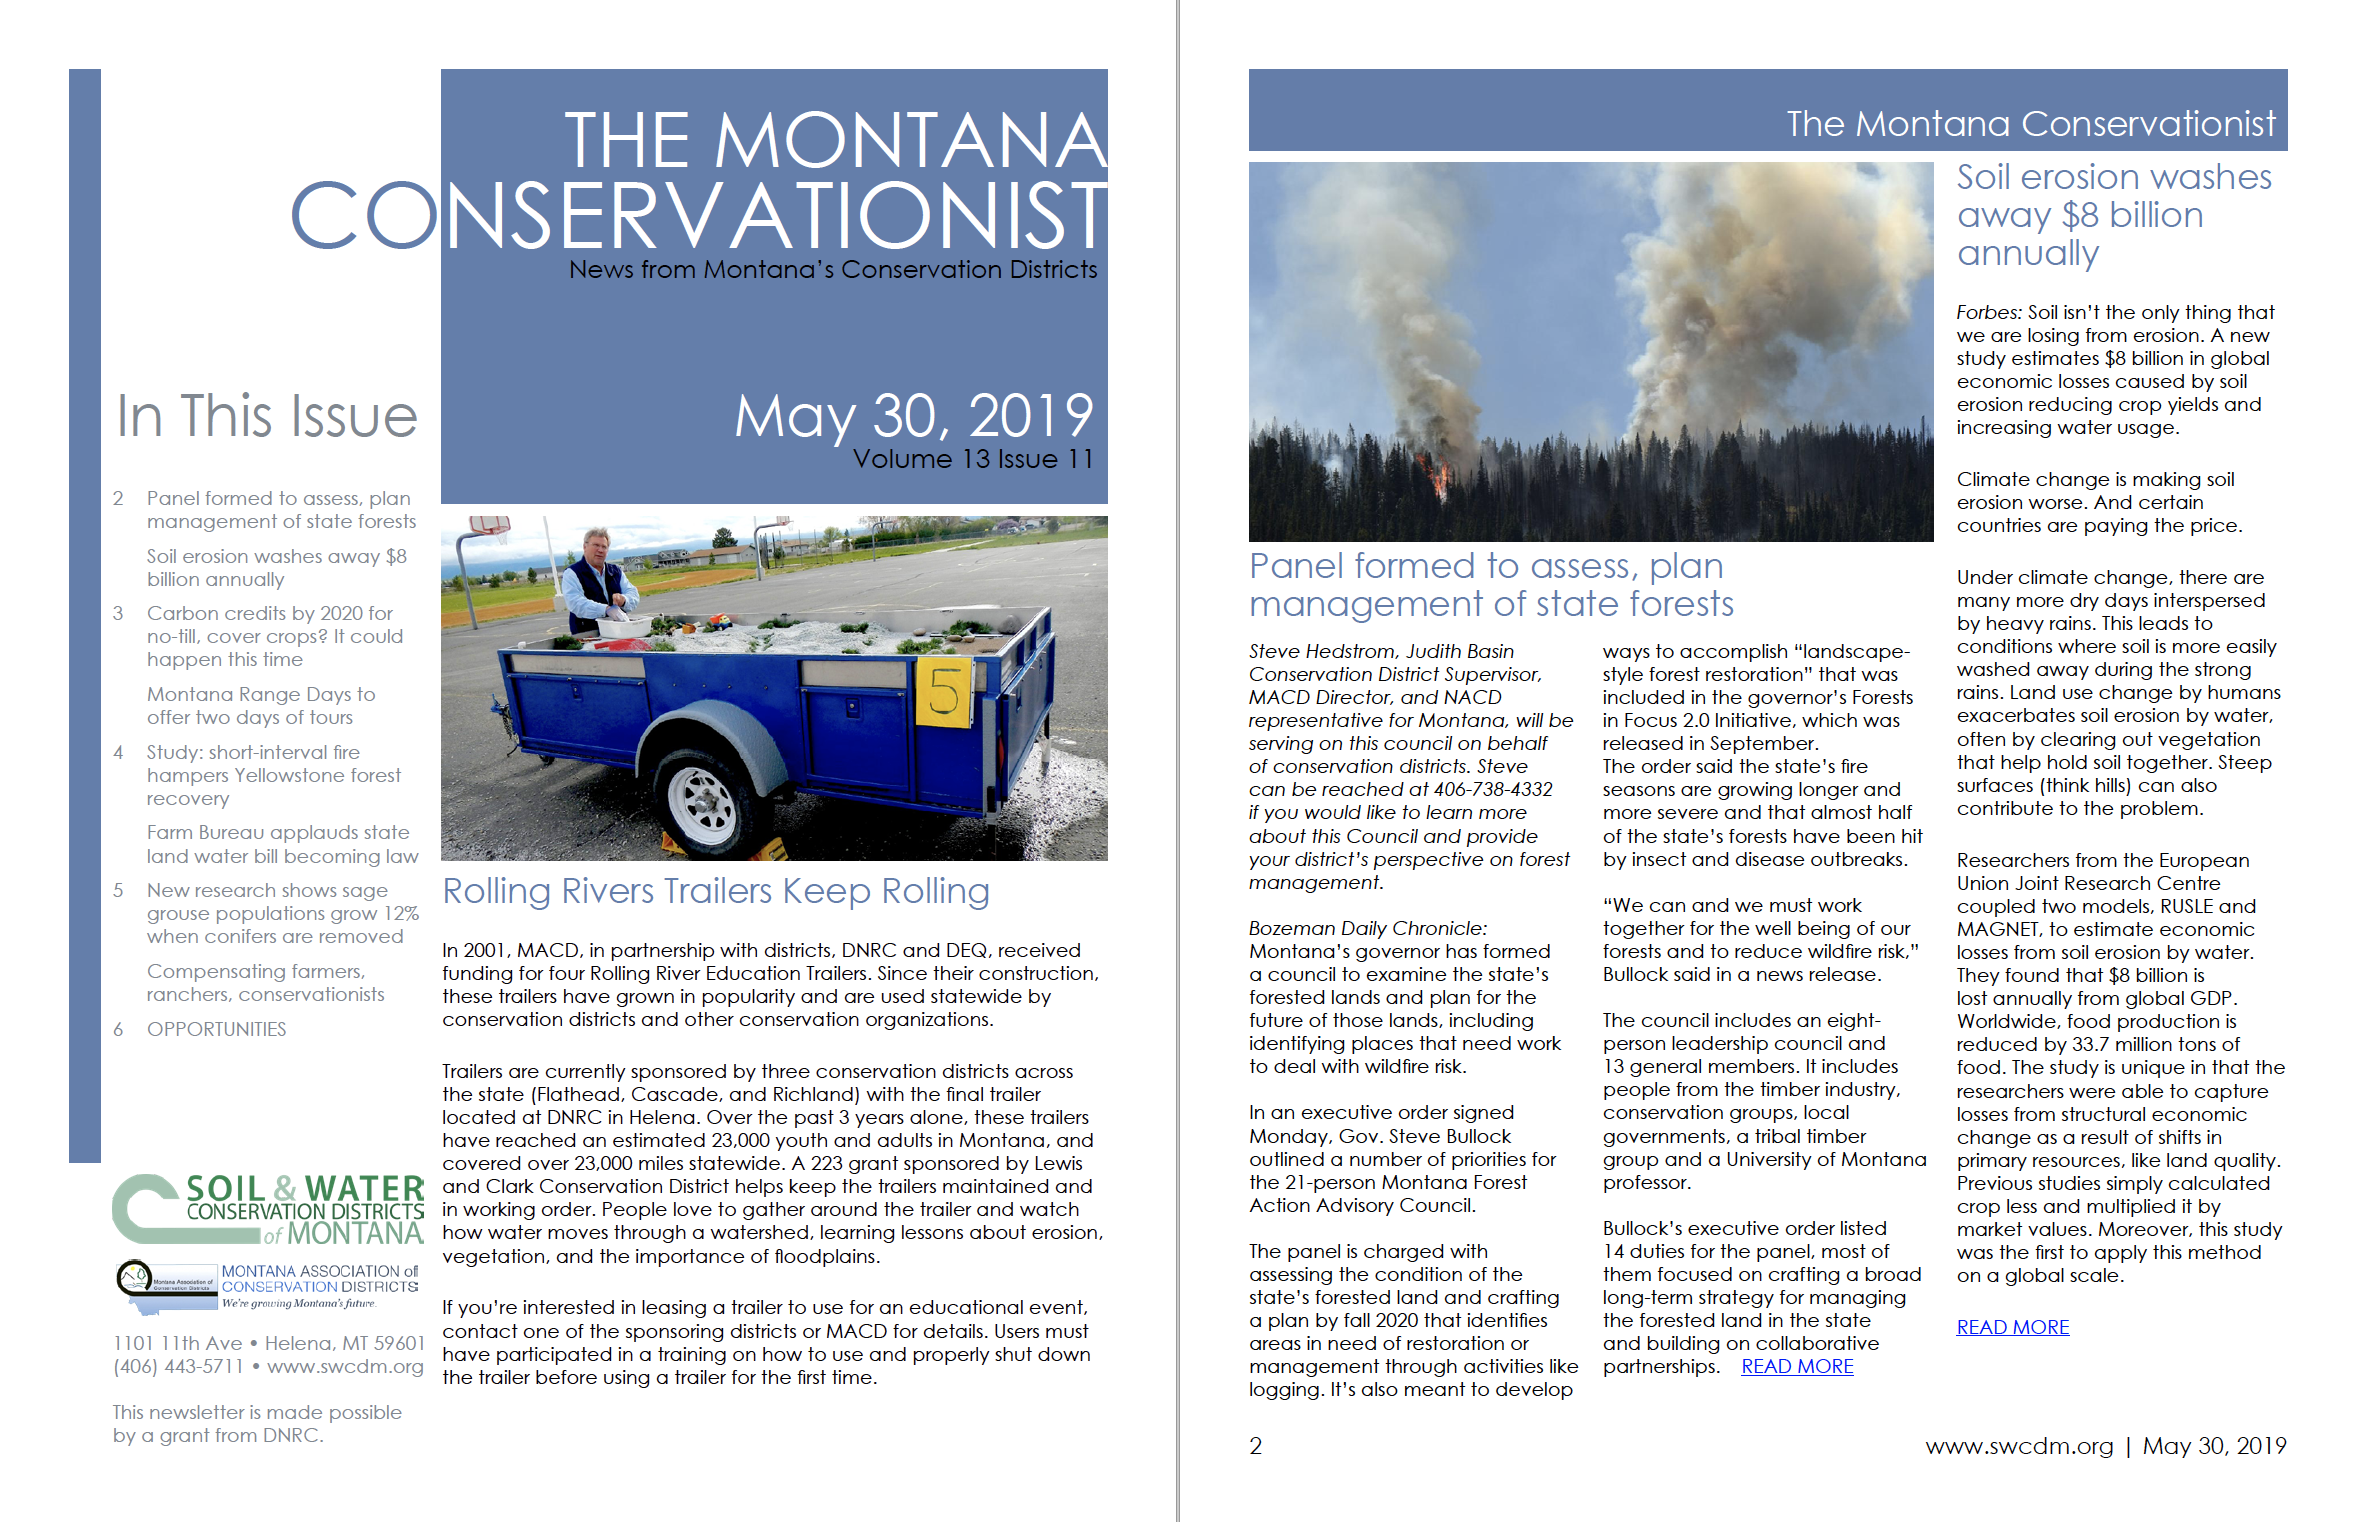 The Montana Conservationist May 30